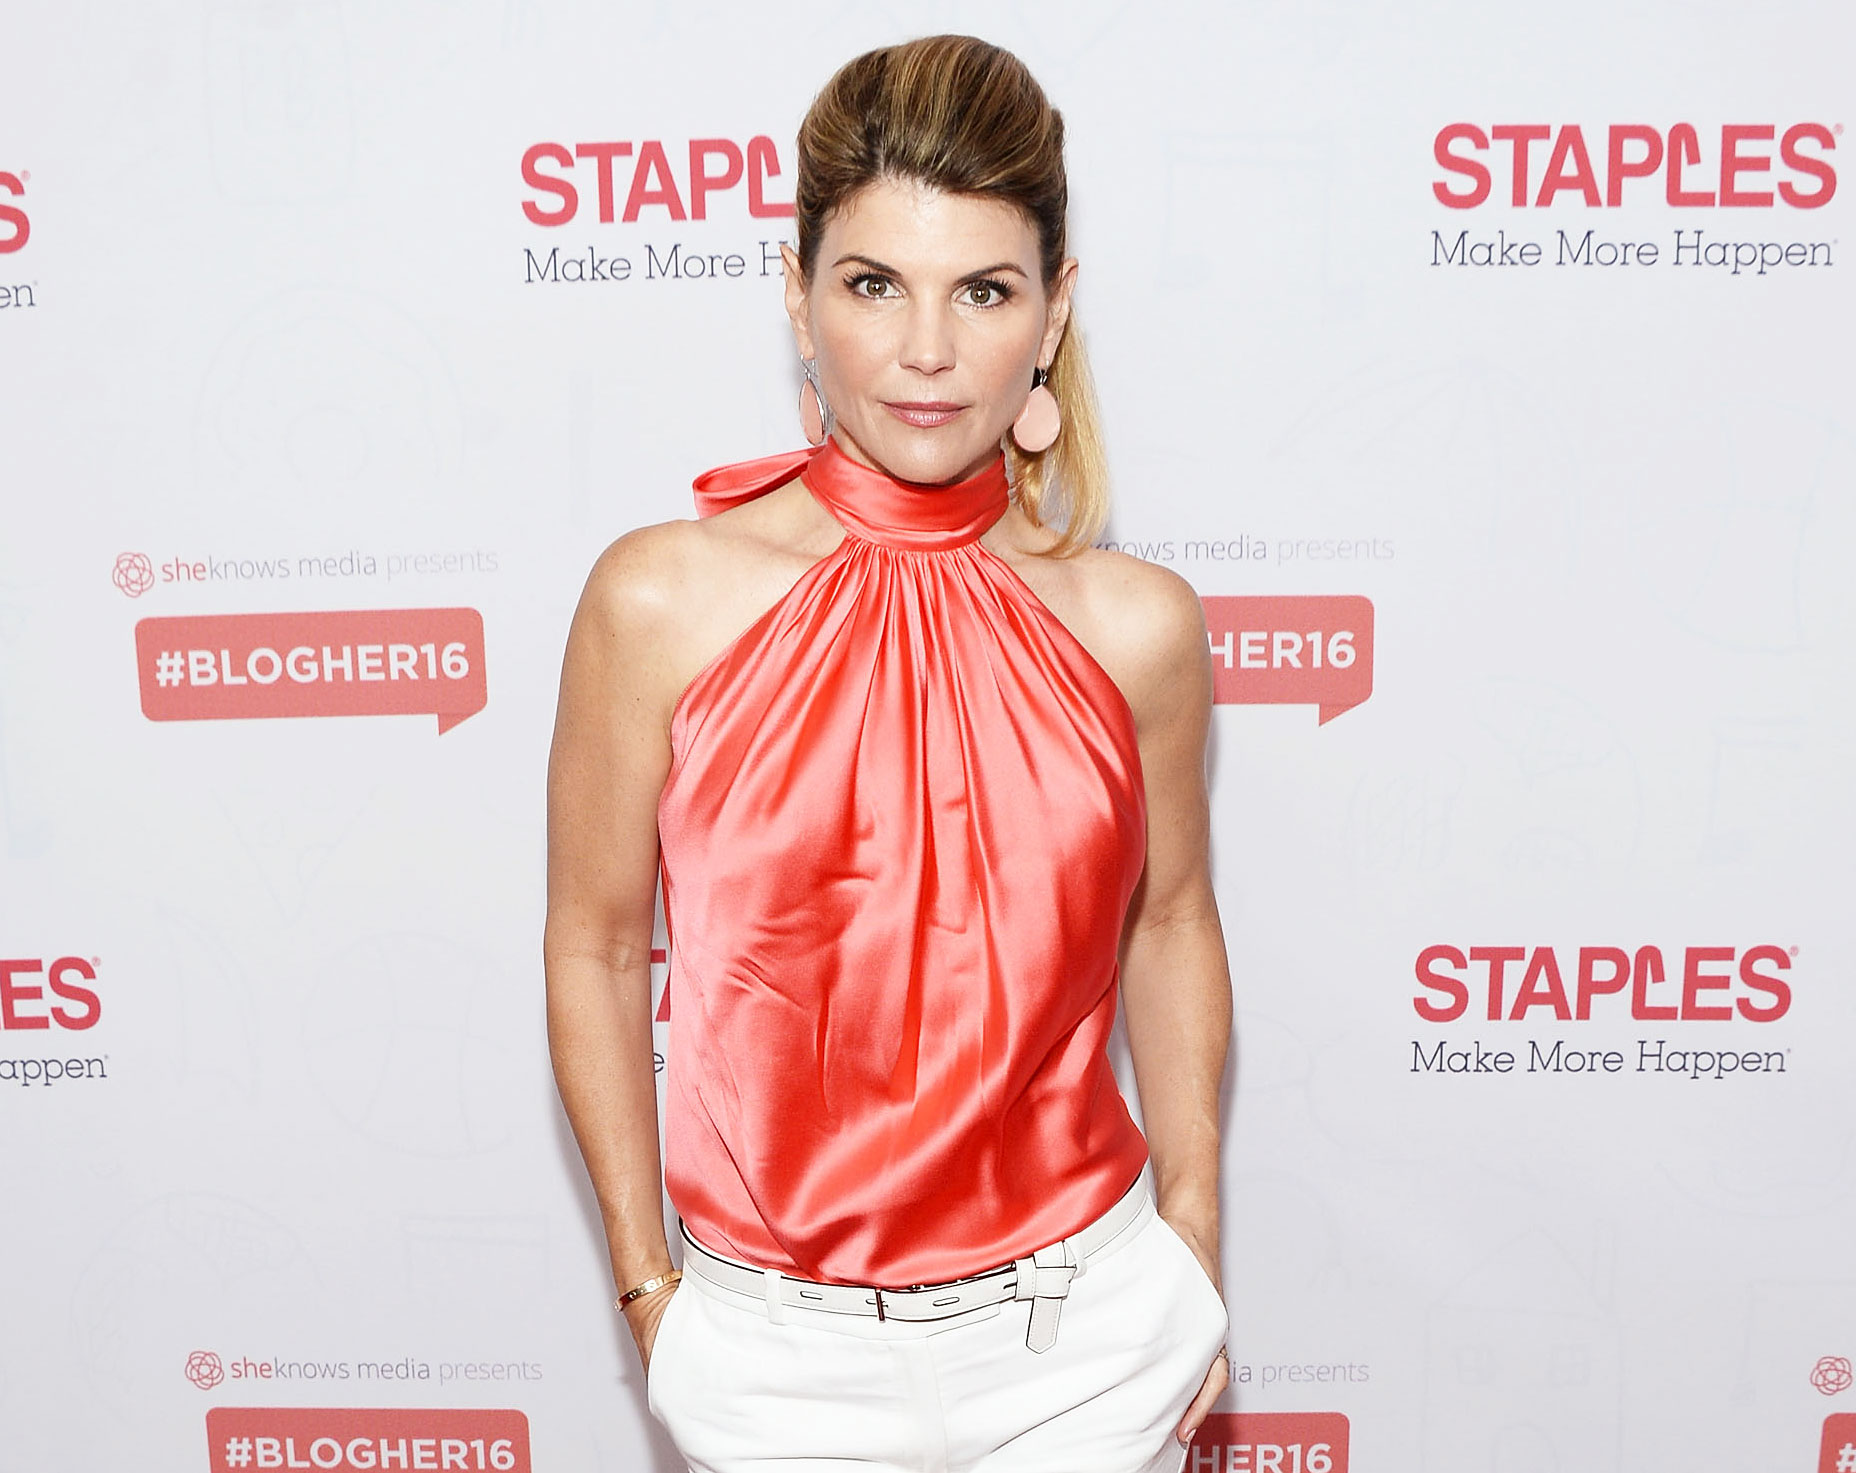 Lori Loughlin One Million Dollar Bond College Admissions Scam Case